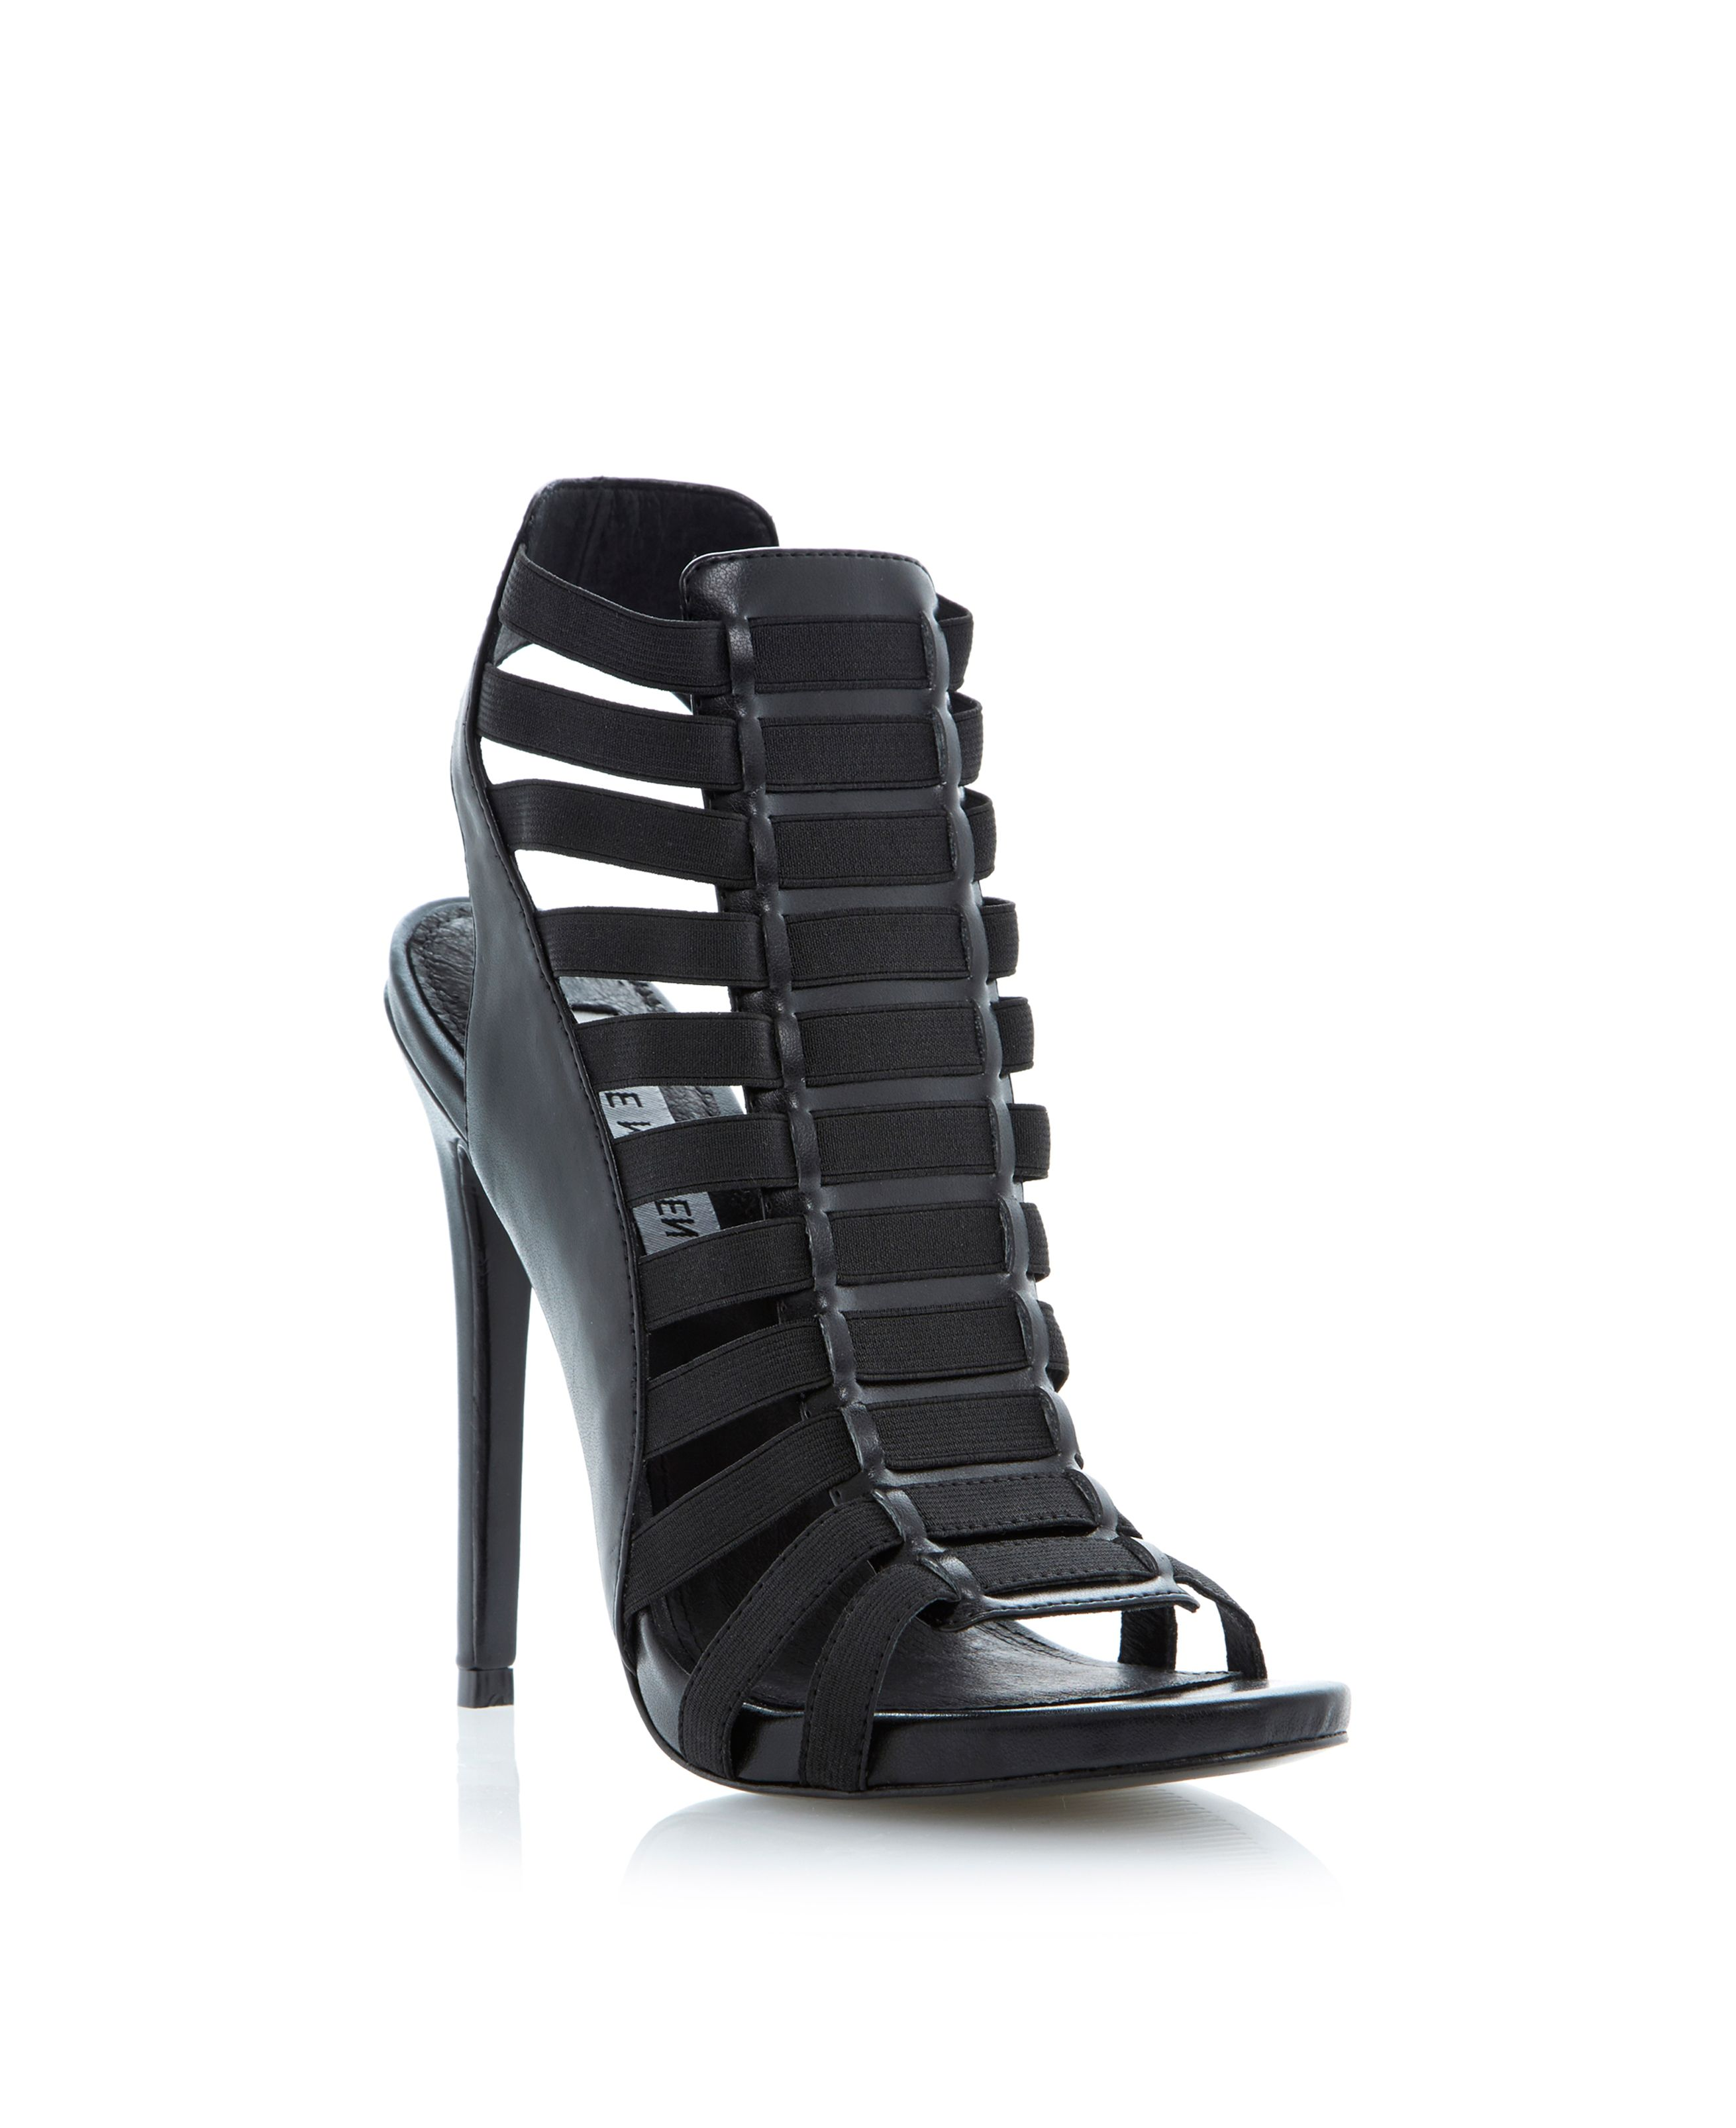 Stretche stiletto sandals